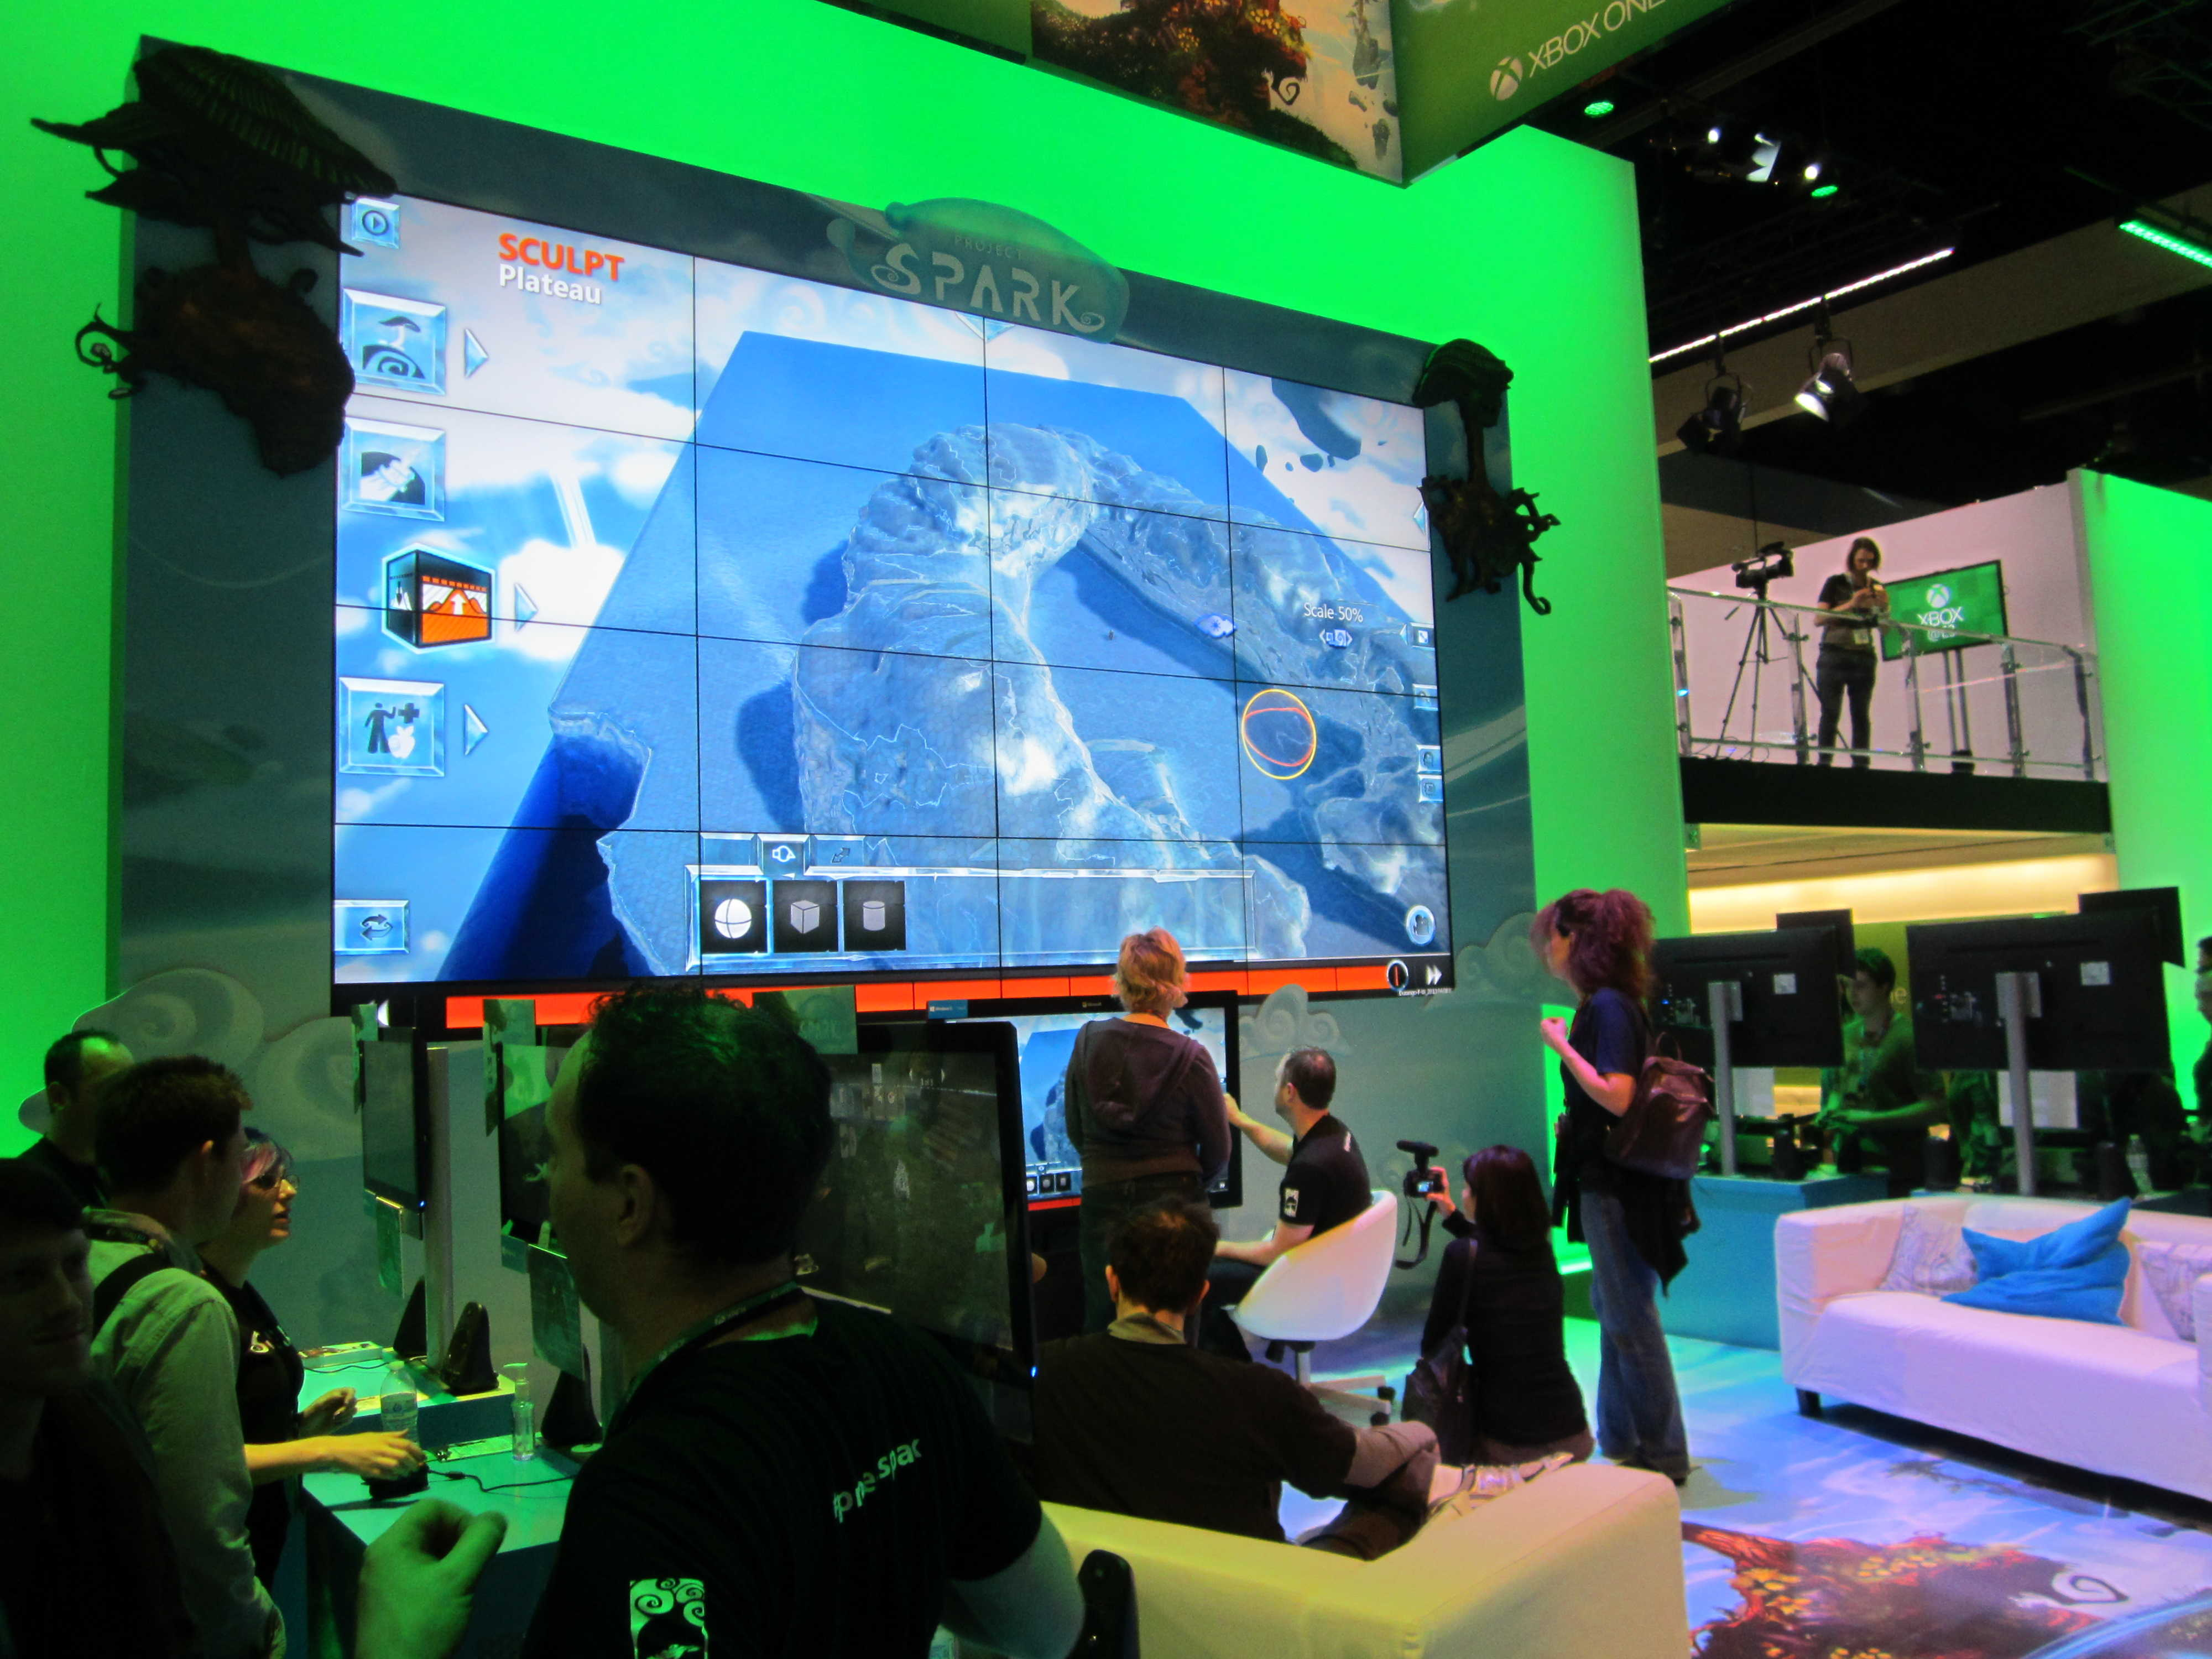 Xbox One E3 Booth